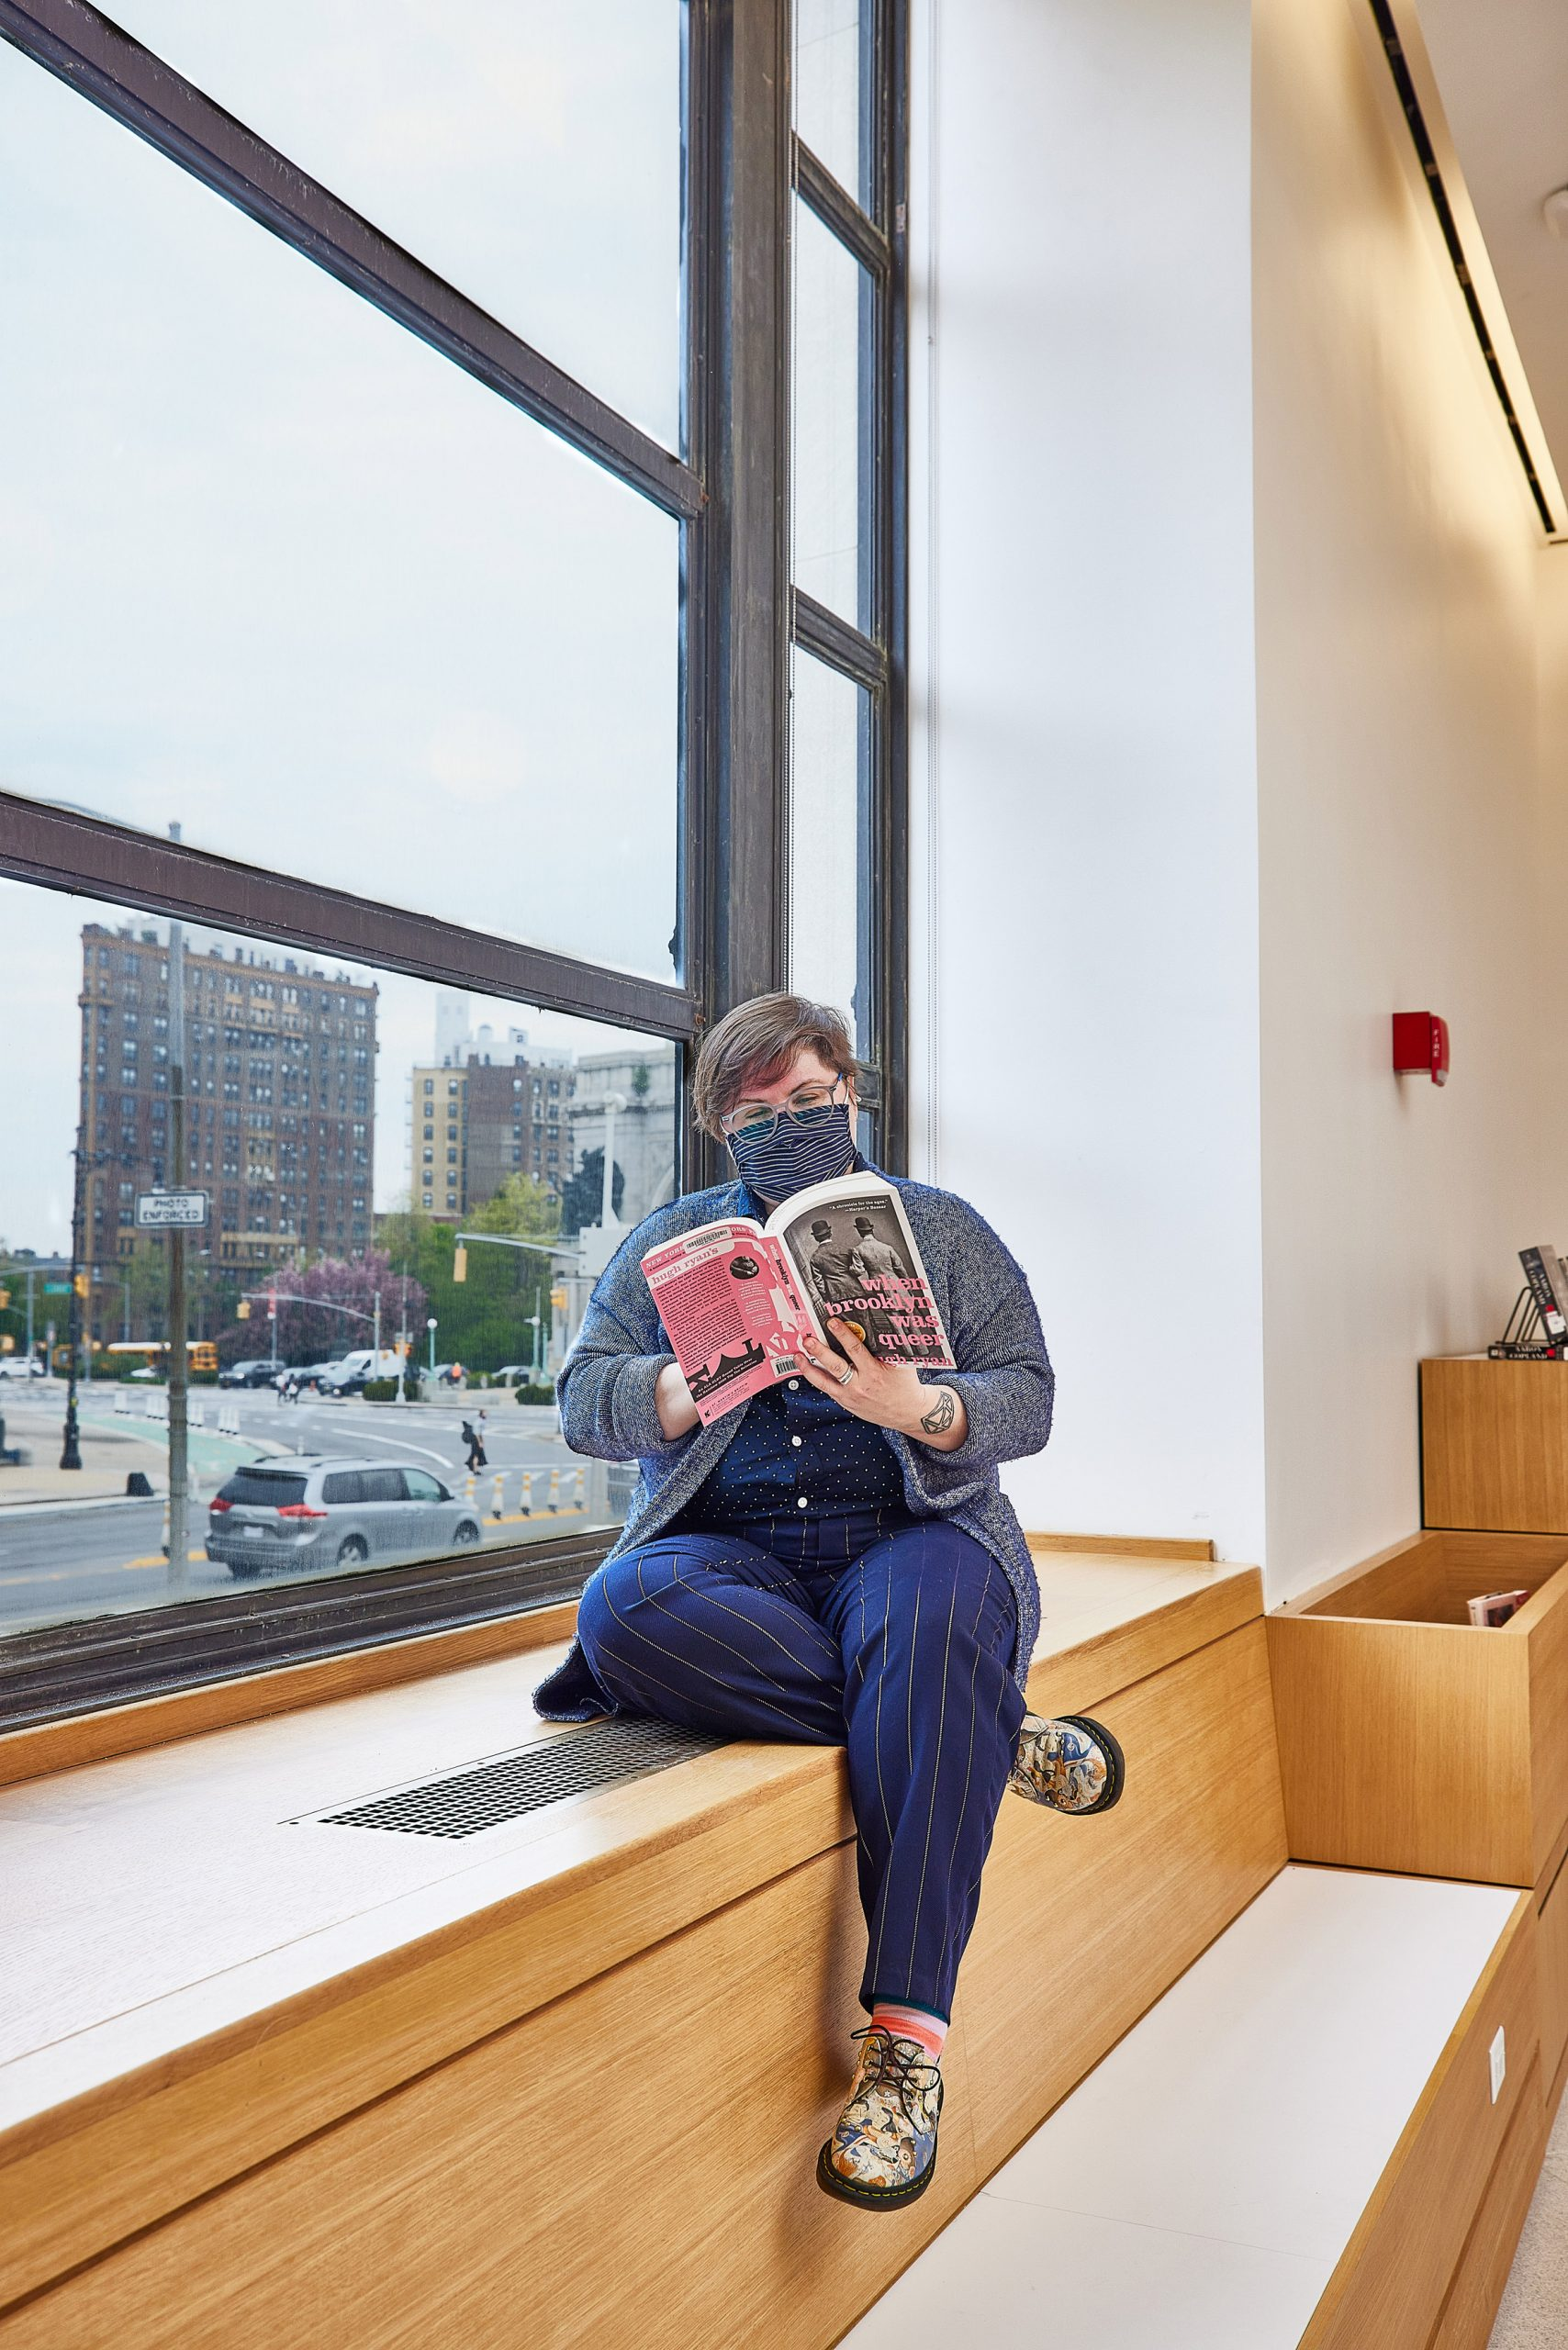 Toshiko Mori redesigned the Brooklyn library